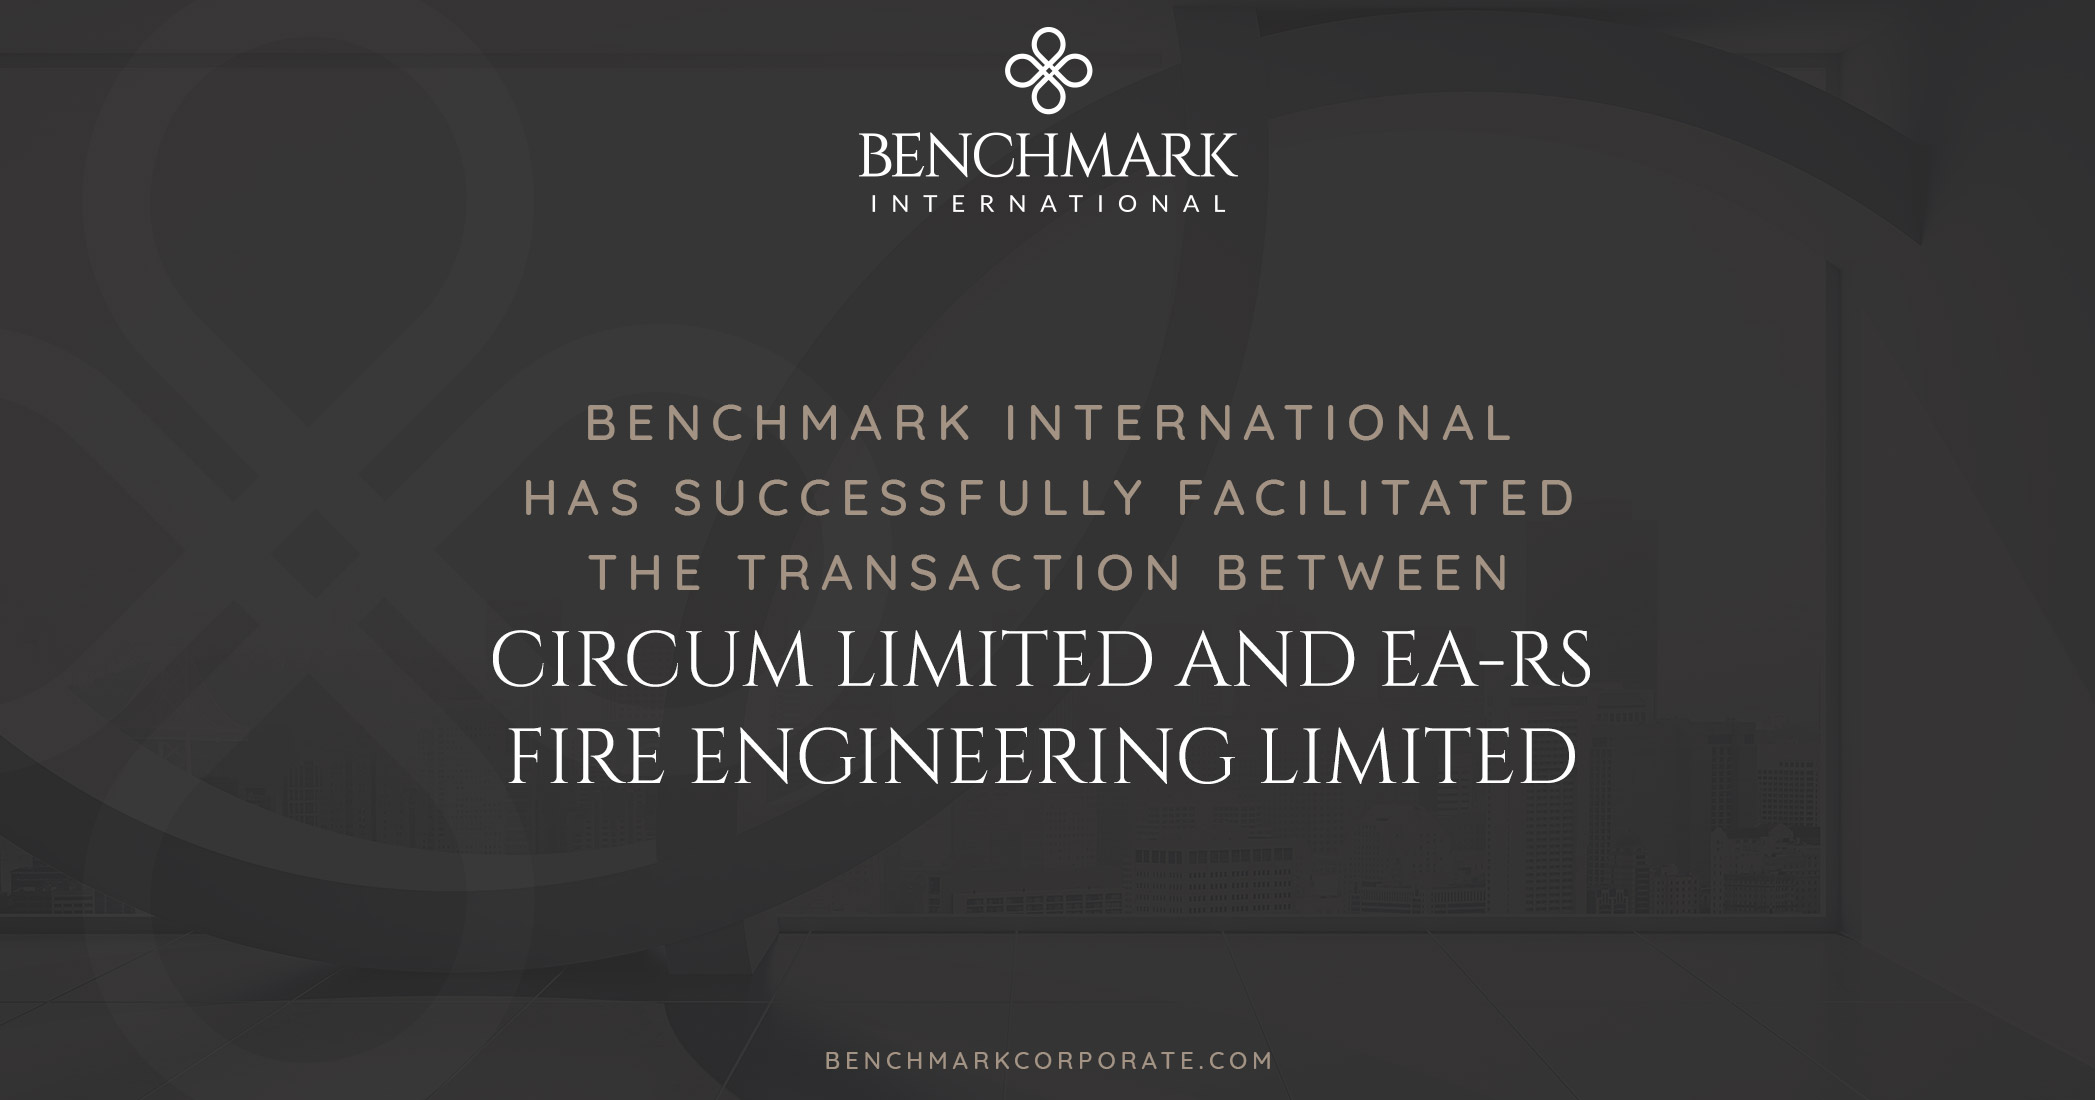 Benchmark International has Successfully Facilitated the Transaction Between Circum Limited and EA-RS Fire Engineering Limited